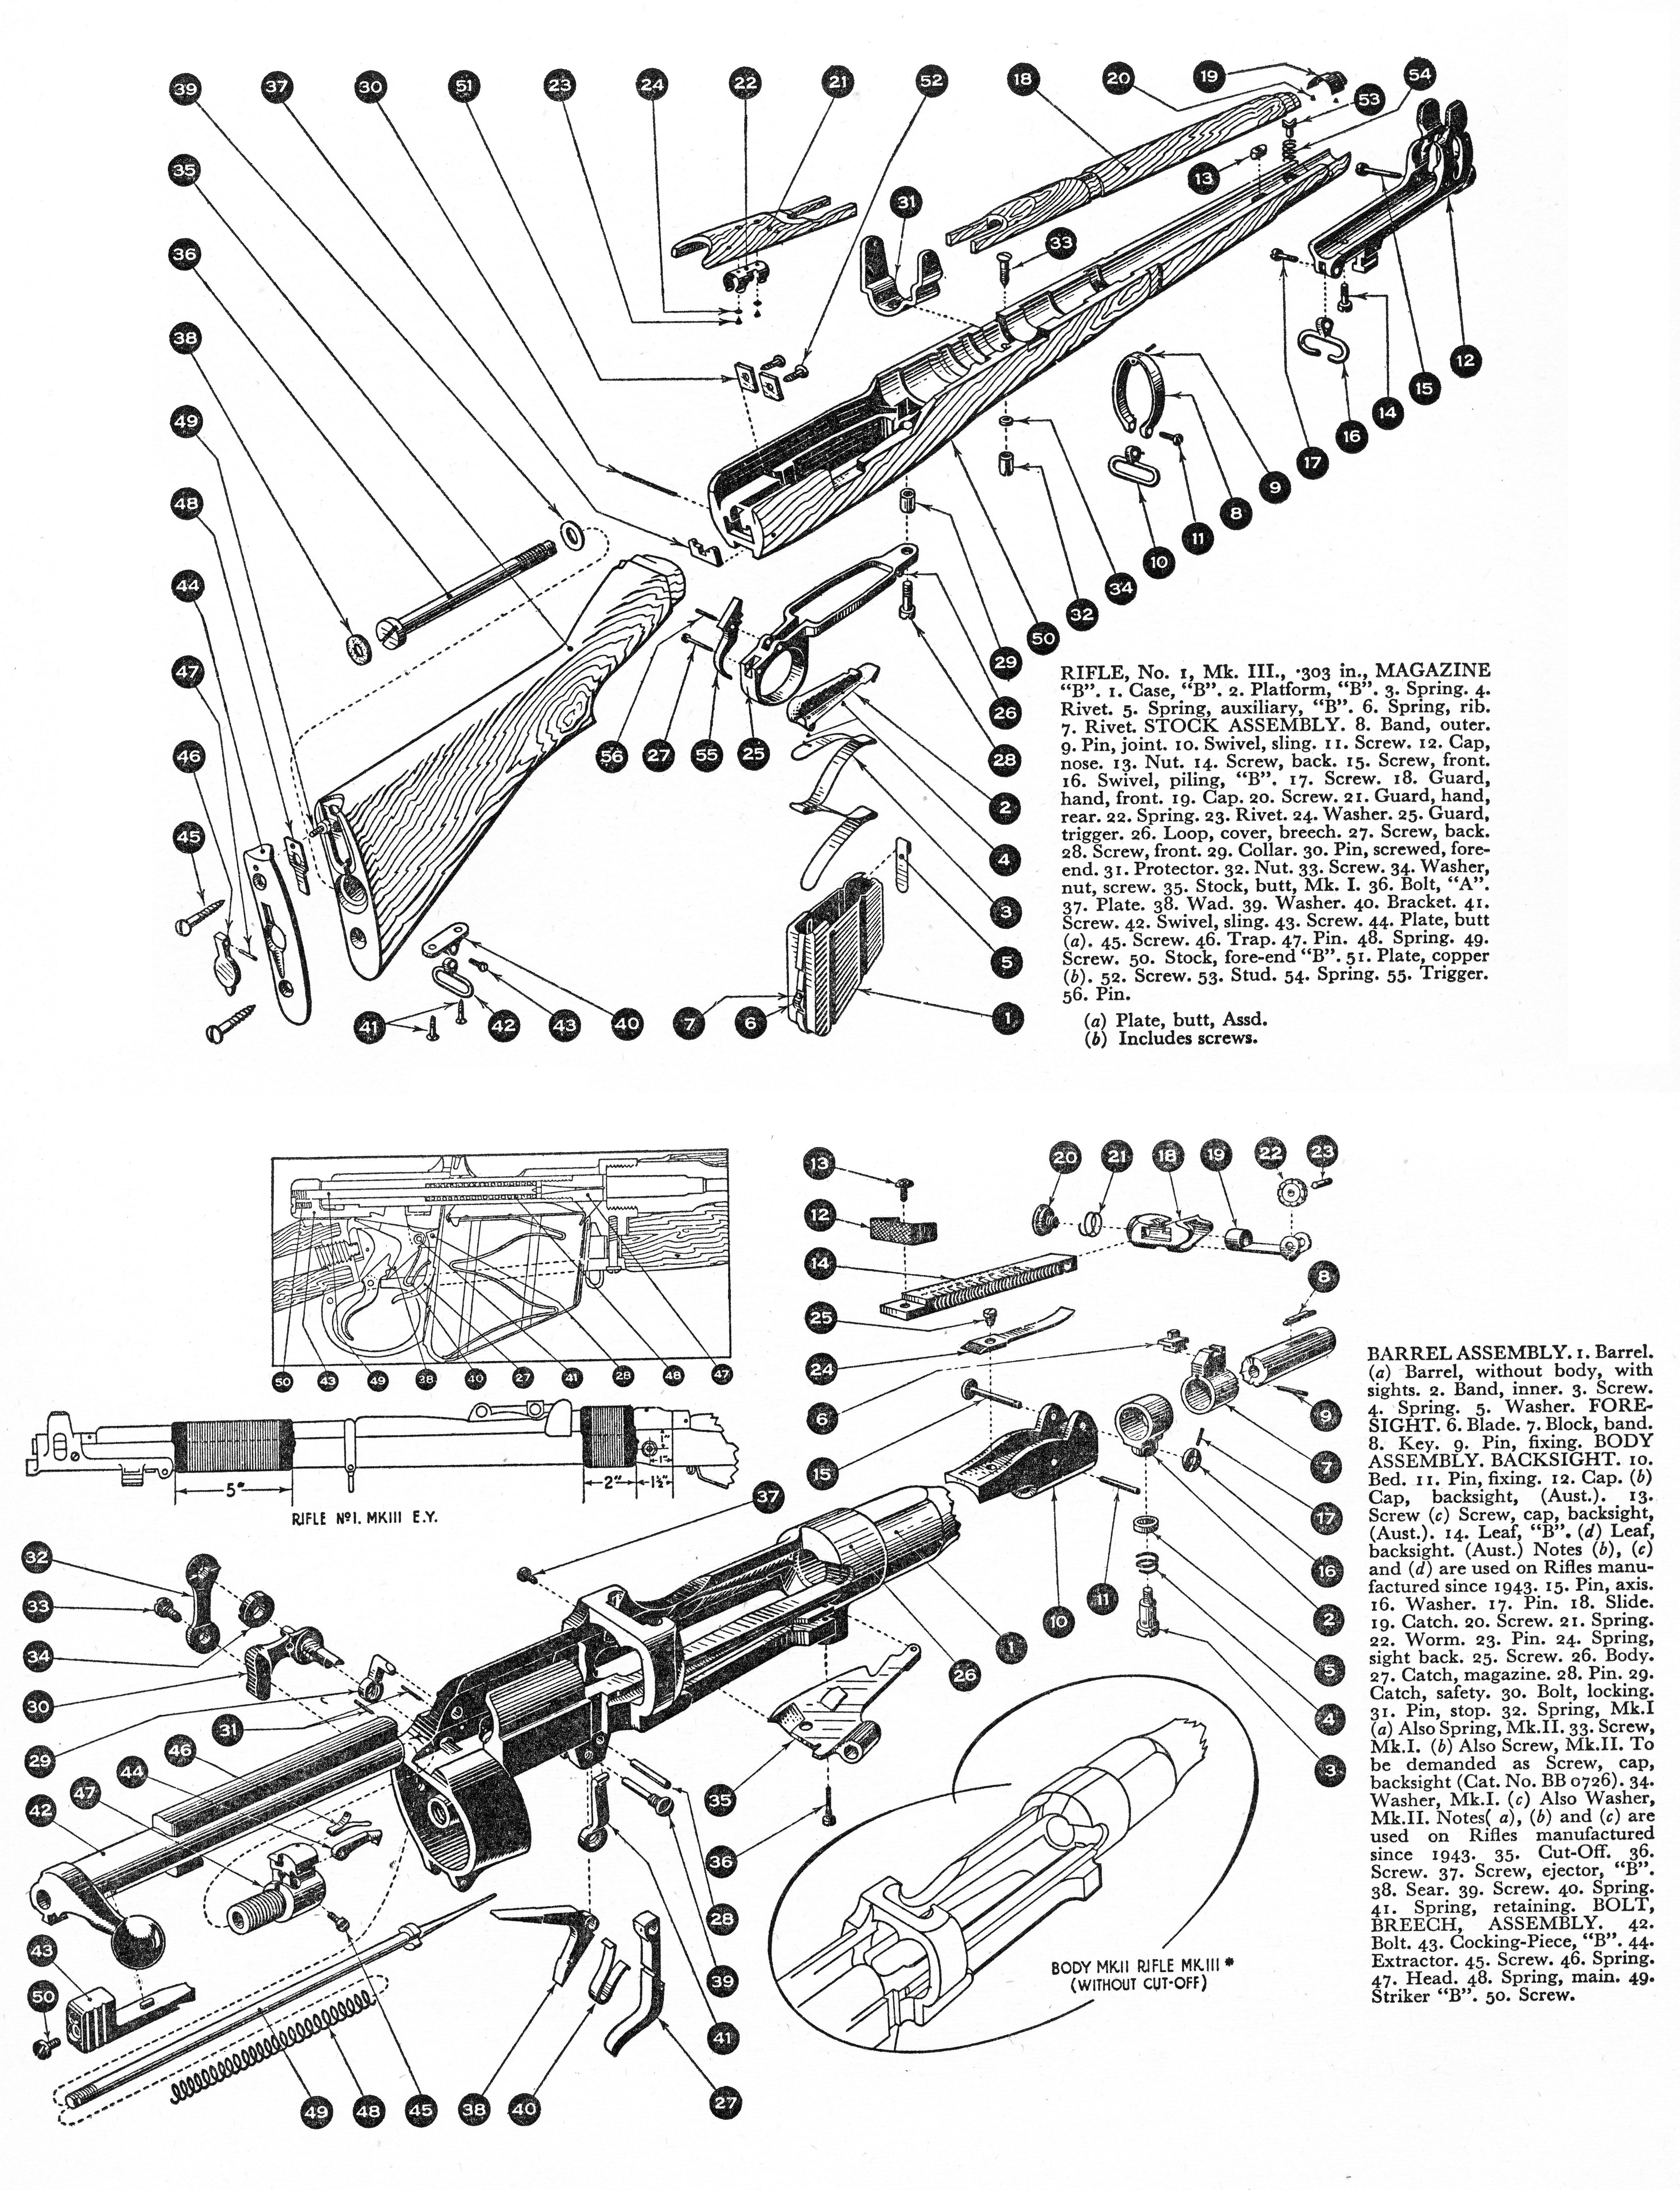 Detailed parts diagram of 'Rifle No1, MkIII, SMLE 303in